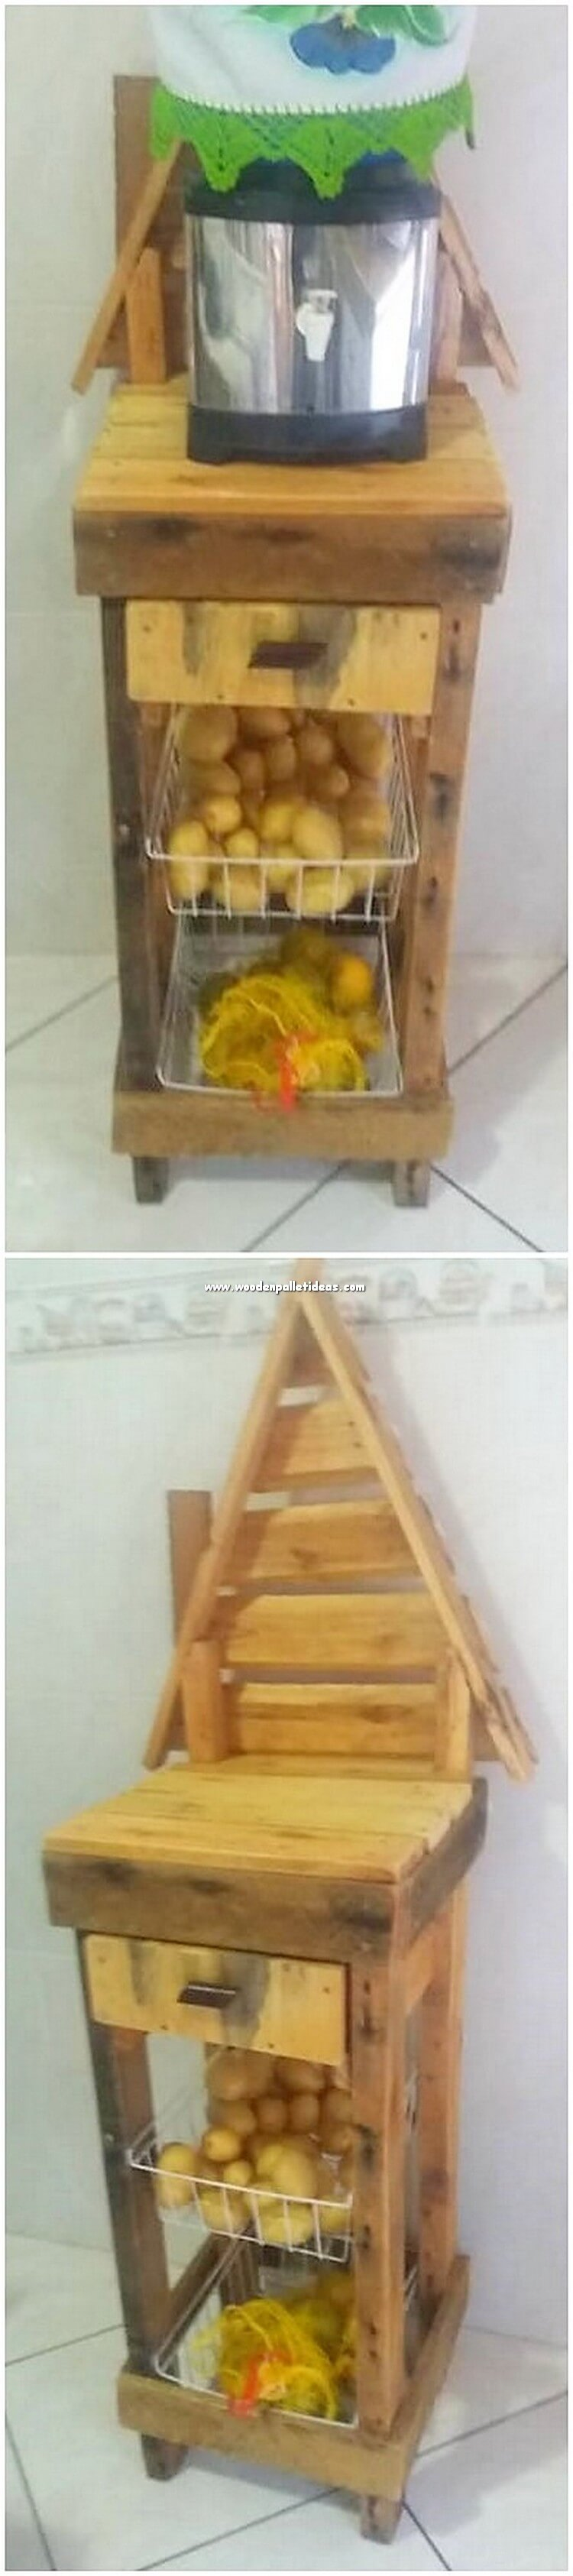 Pallet Fruits and Vegetable Rack